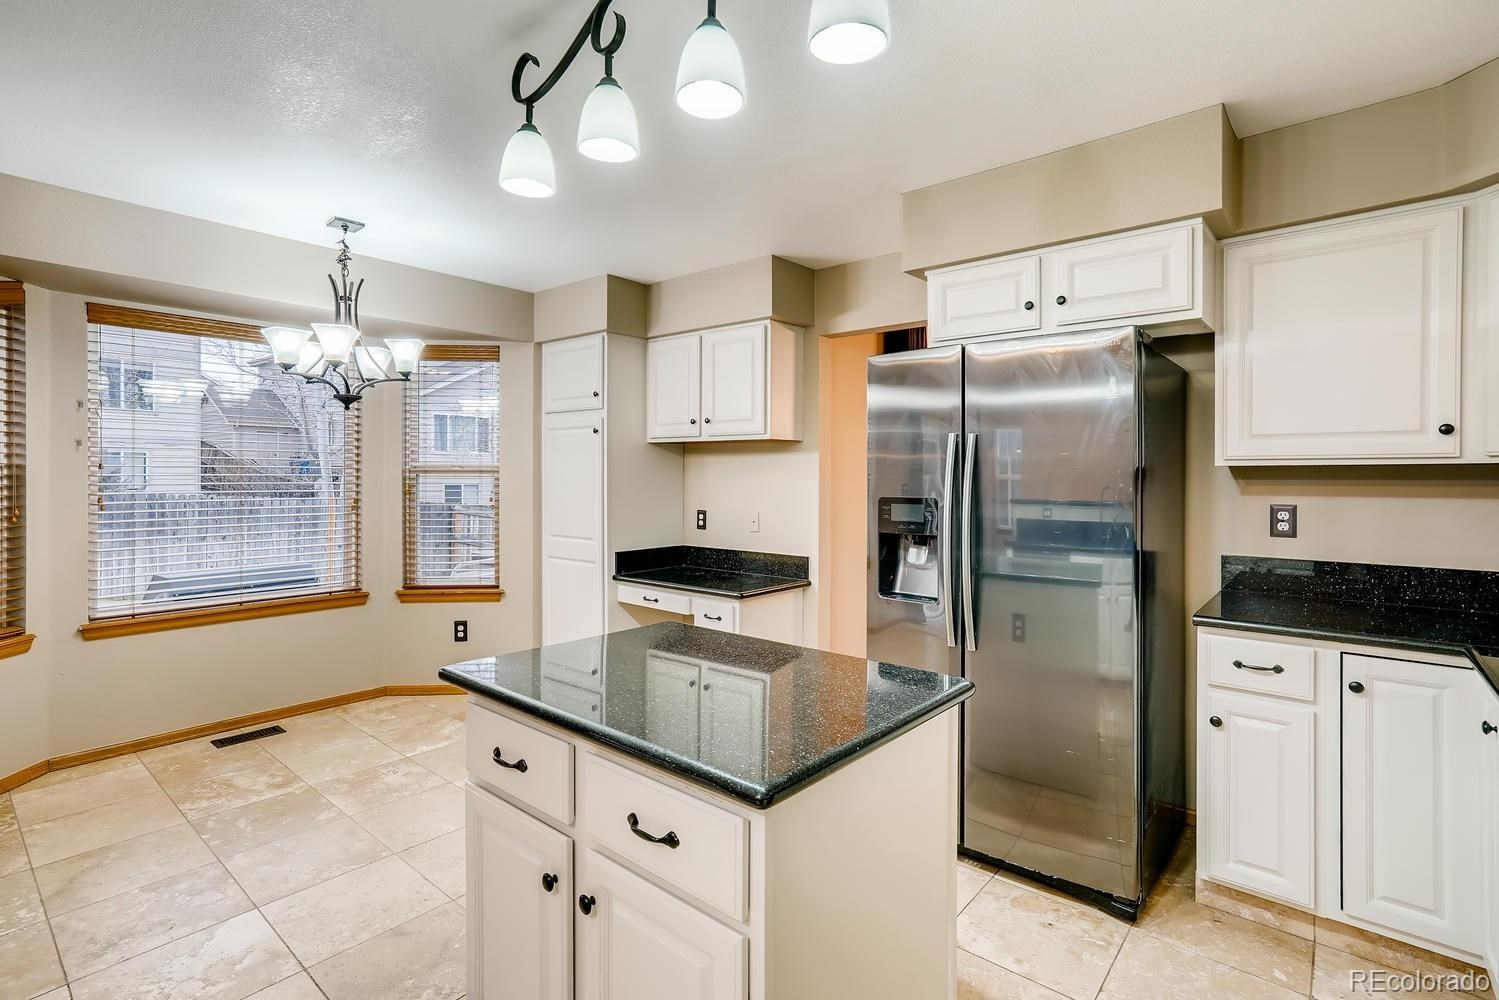 MLS# 6431155 - 10 - 6773 W 98th Circle, Westminster, CO 80021